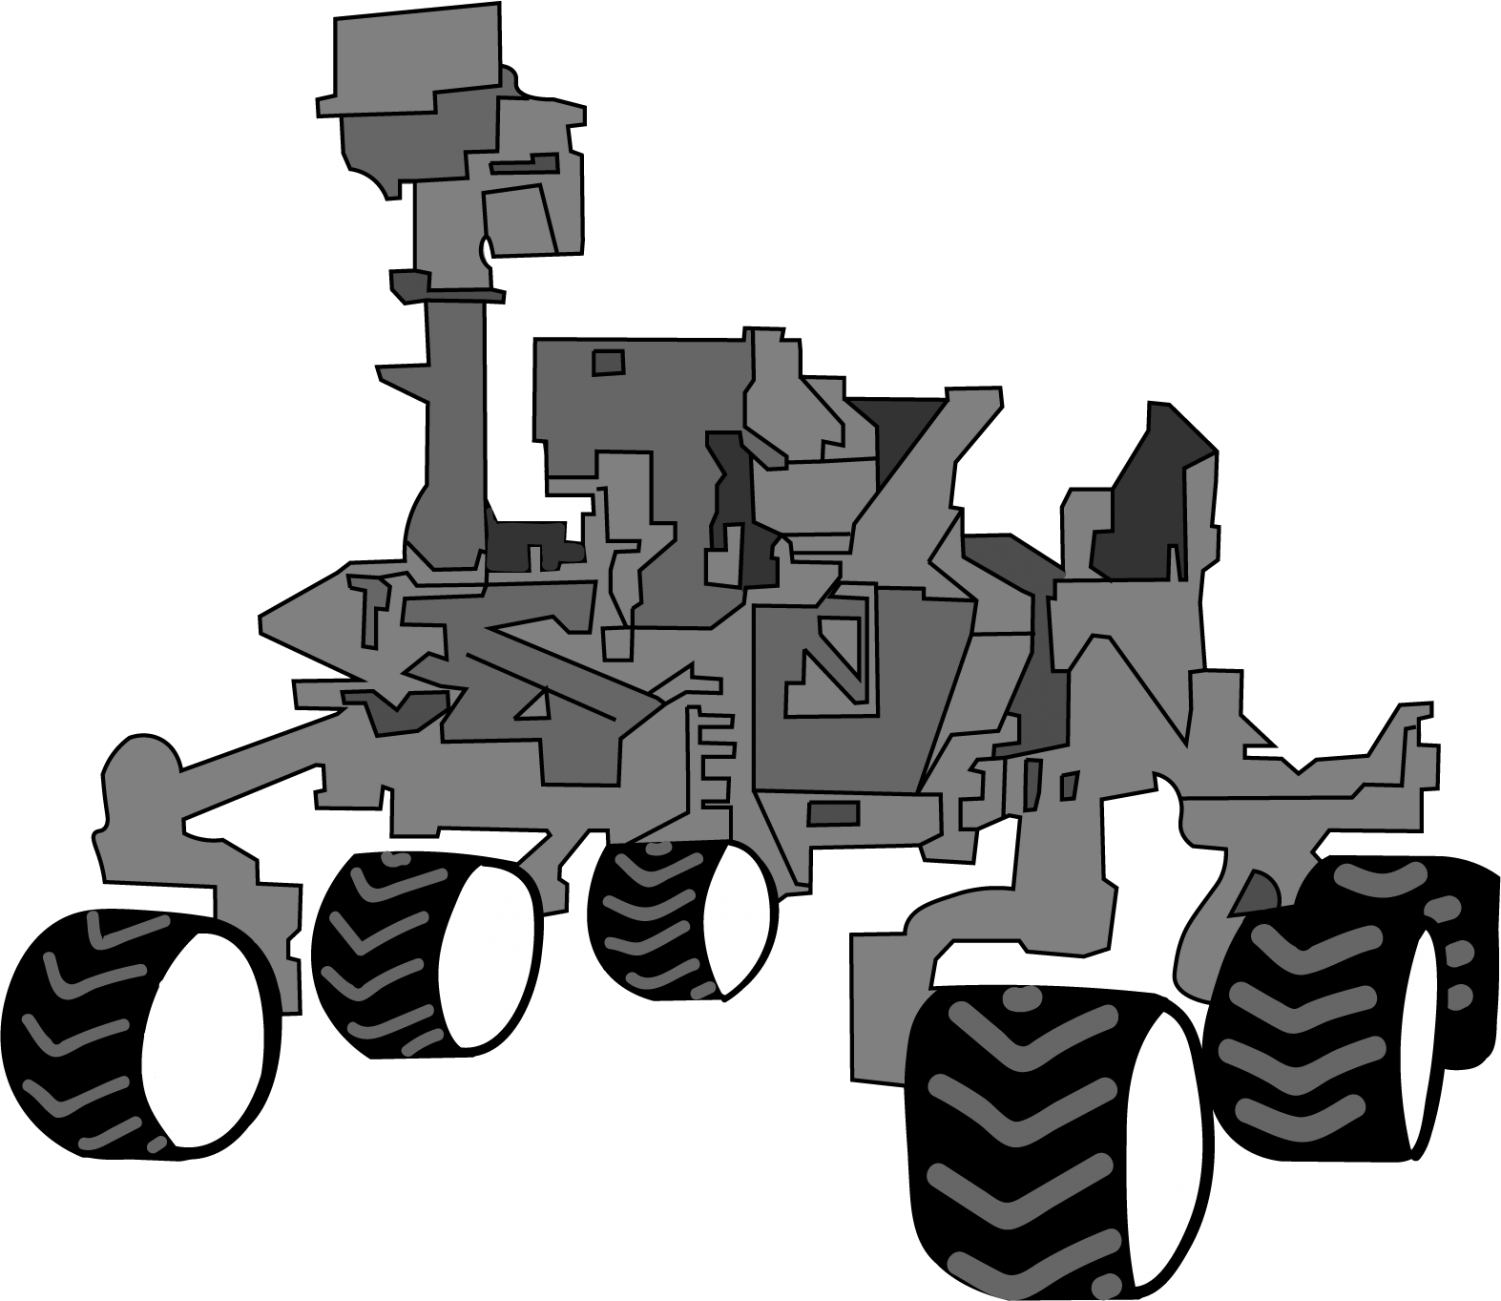 Stylized illustration of the Curiosity rover by Sierra Sellers. The Mars 2020 rover will be nearly identical to Curiosity.